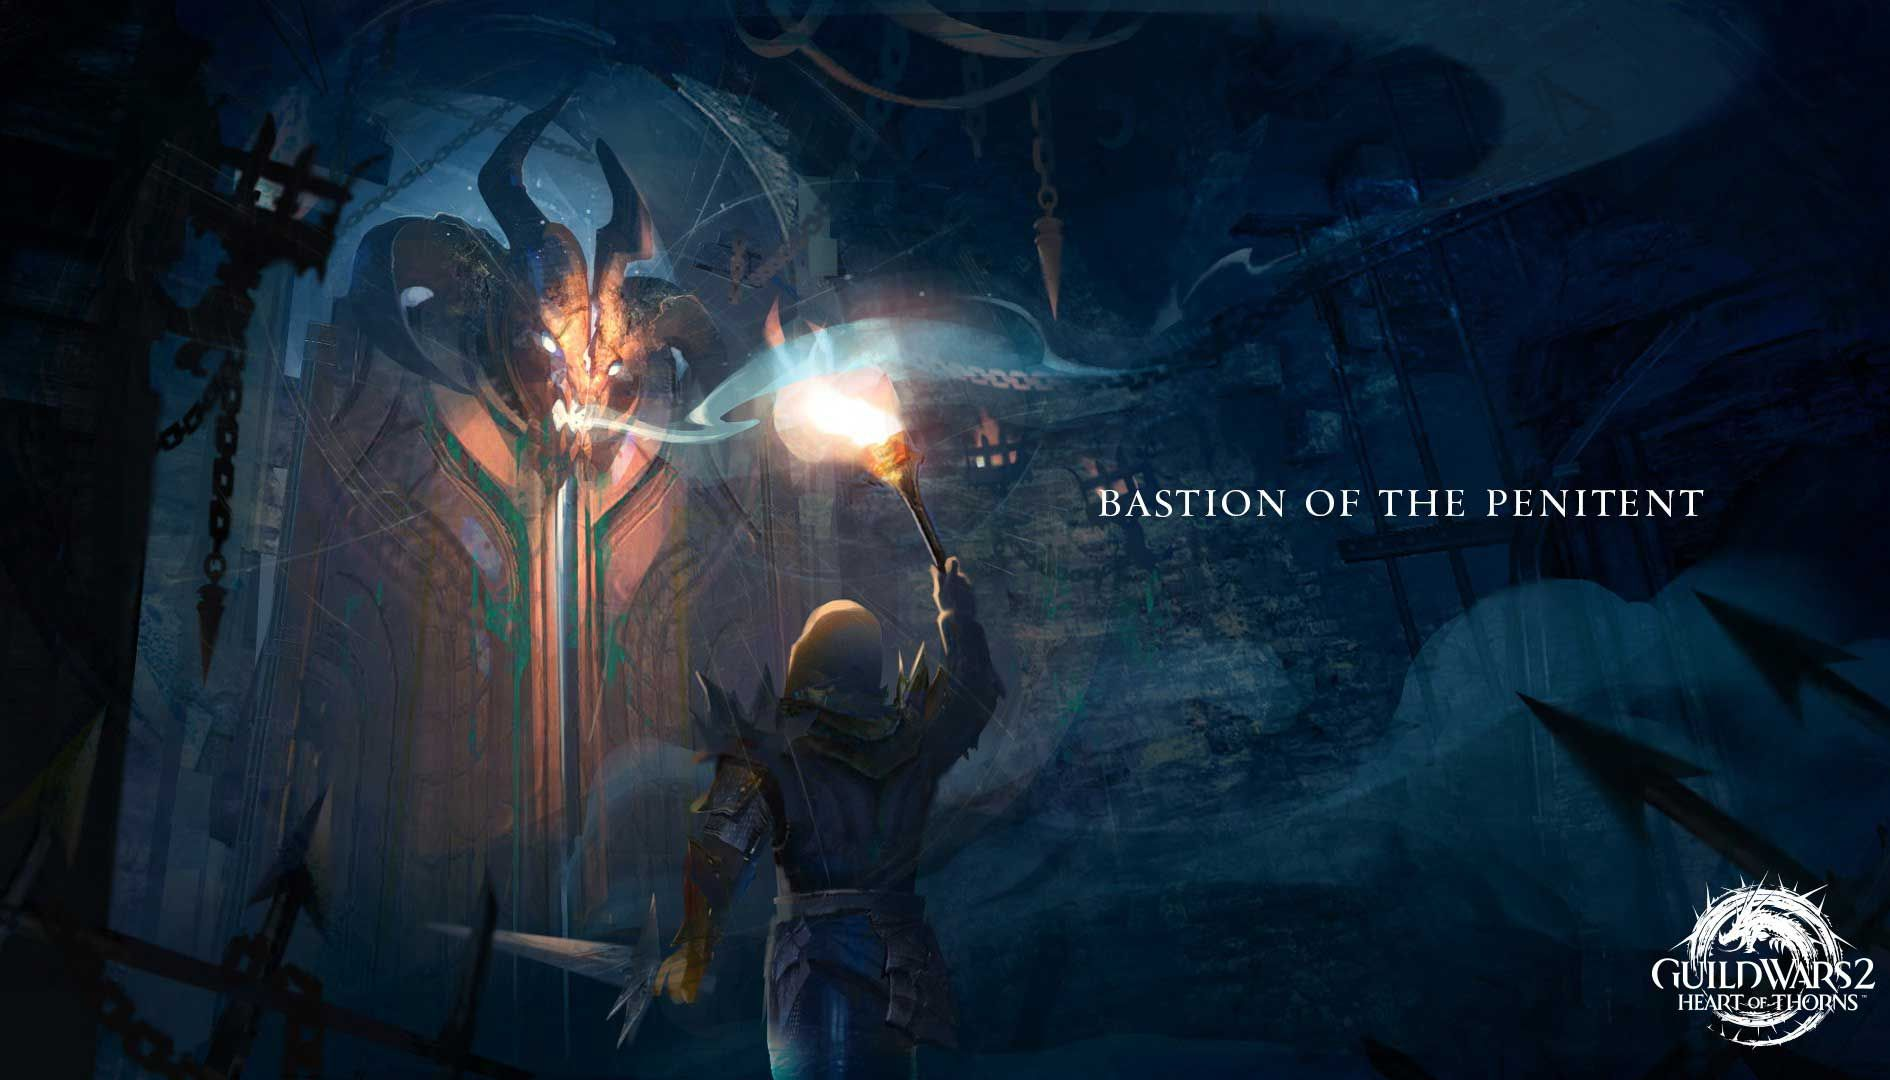 The Demons of Bastion of the Penitent - Guild Wars 2 News